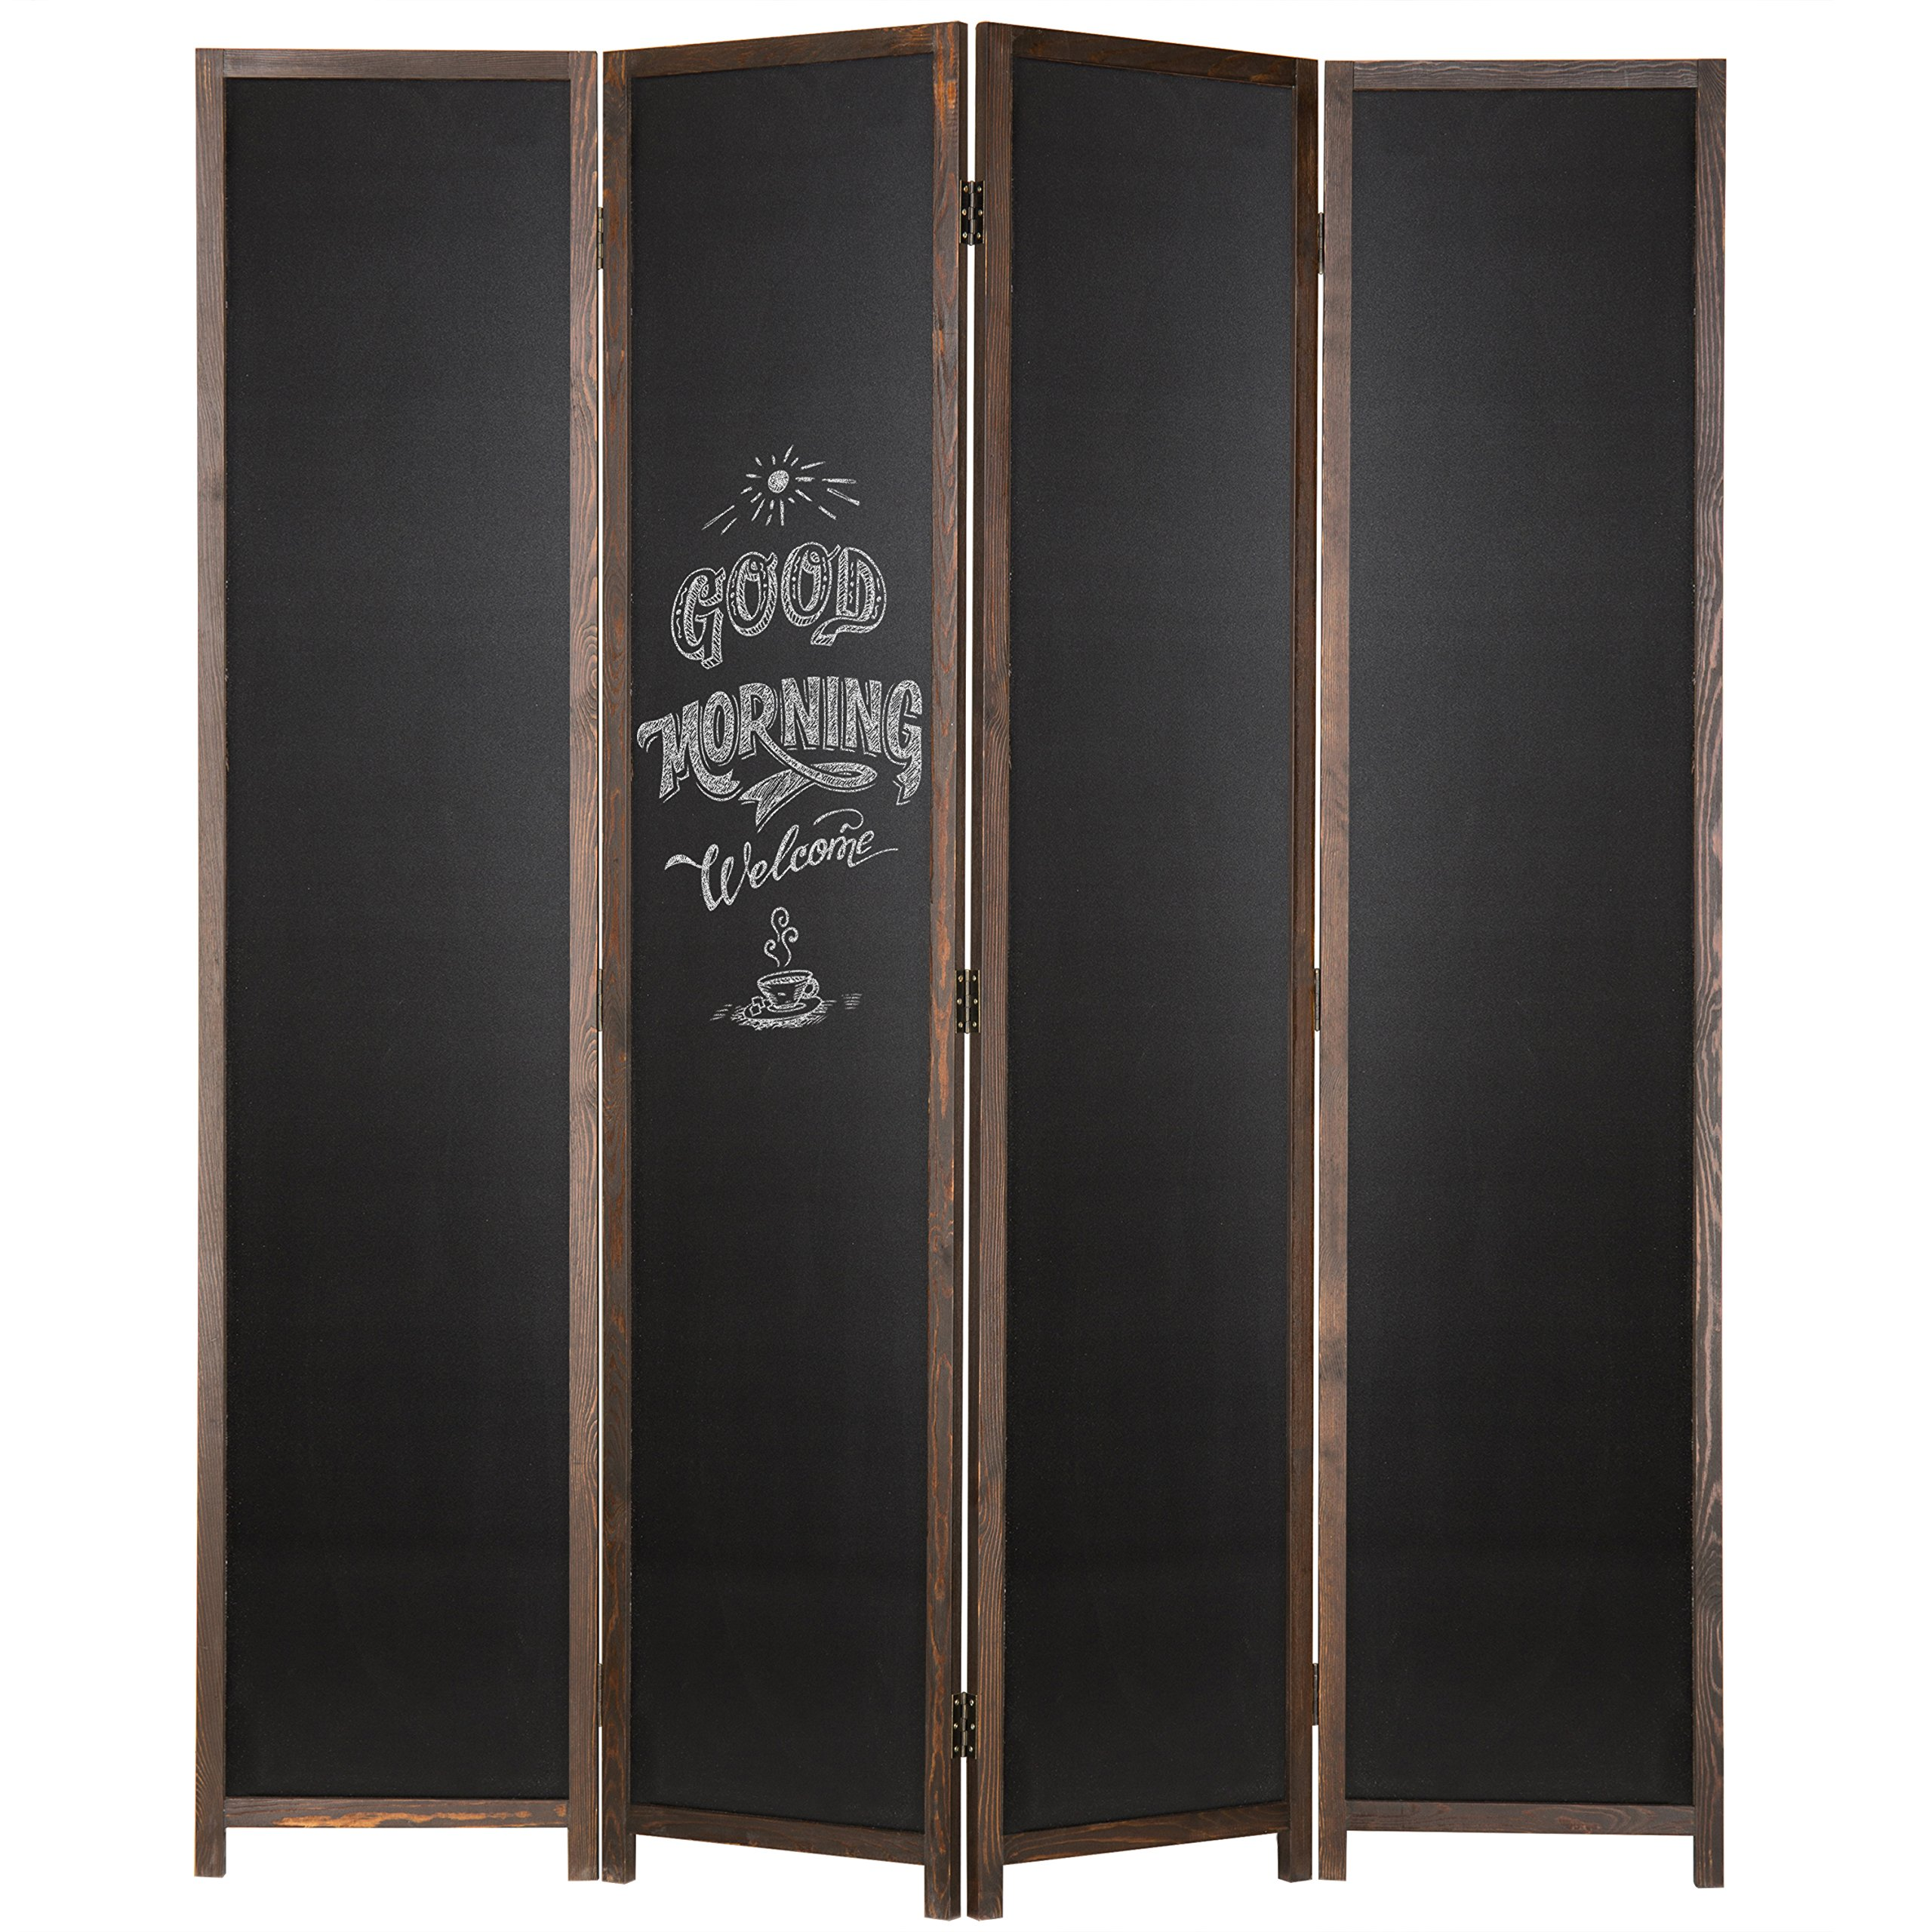 MyGift 4-Panel Chalkboard Wood Frame Room Divider with Dual-Hinges, Dark Brown by MyGift